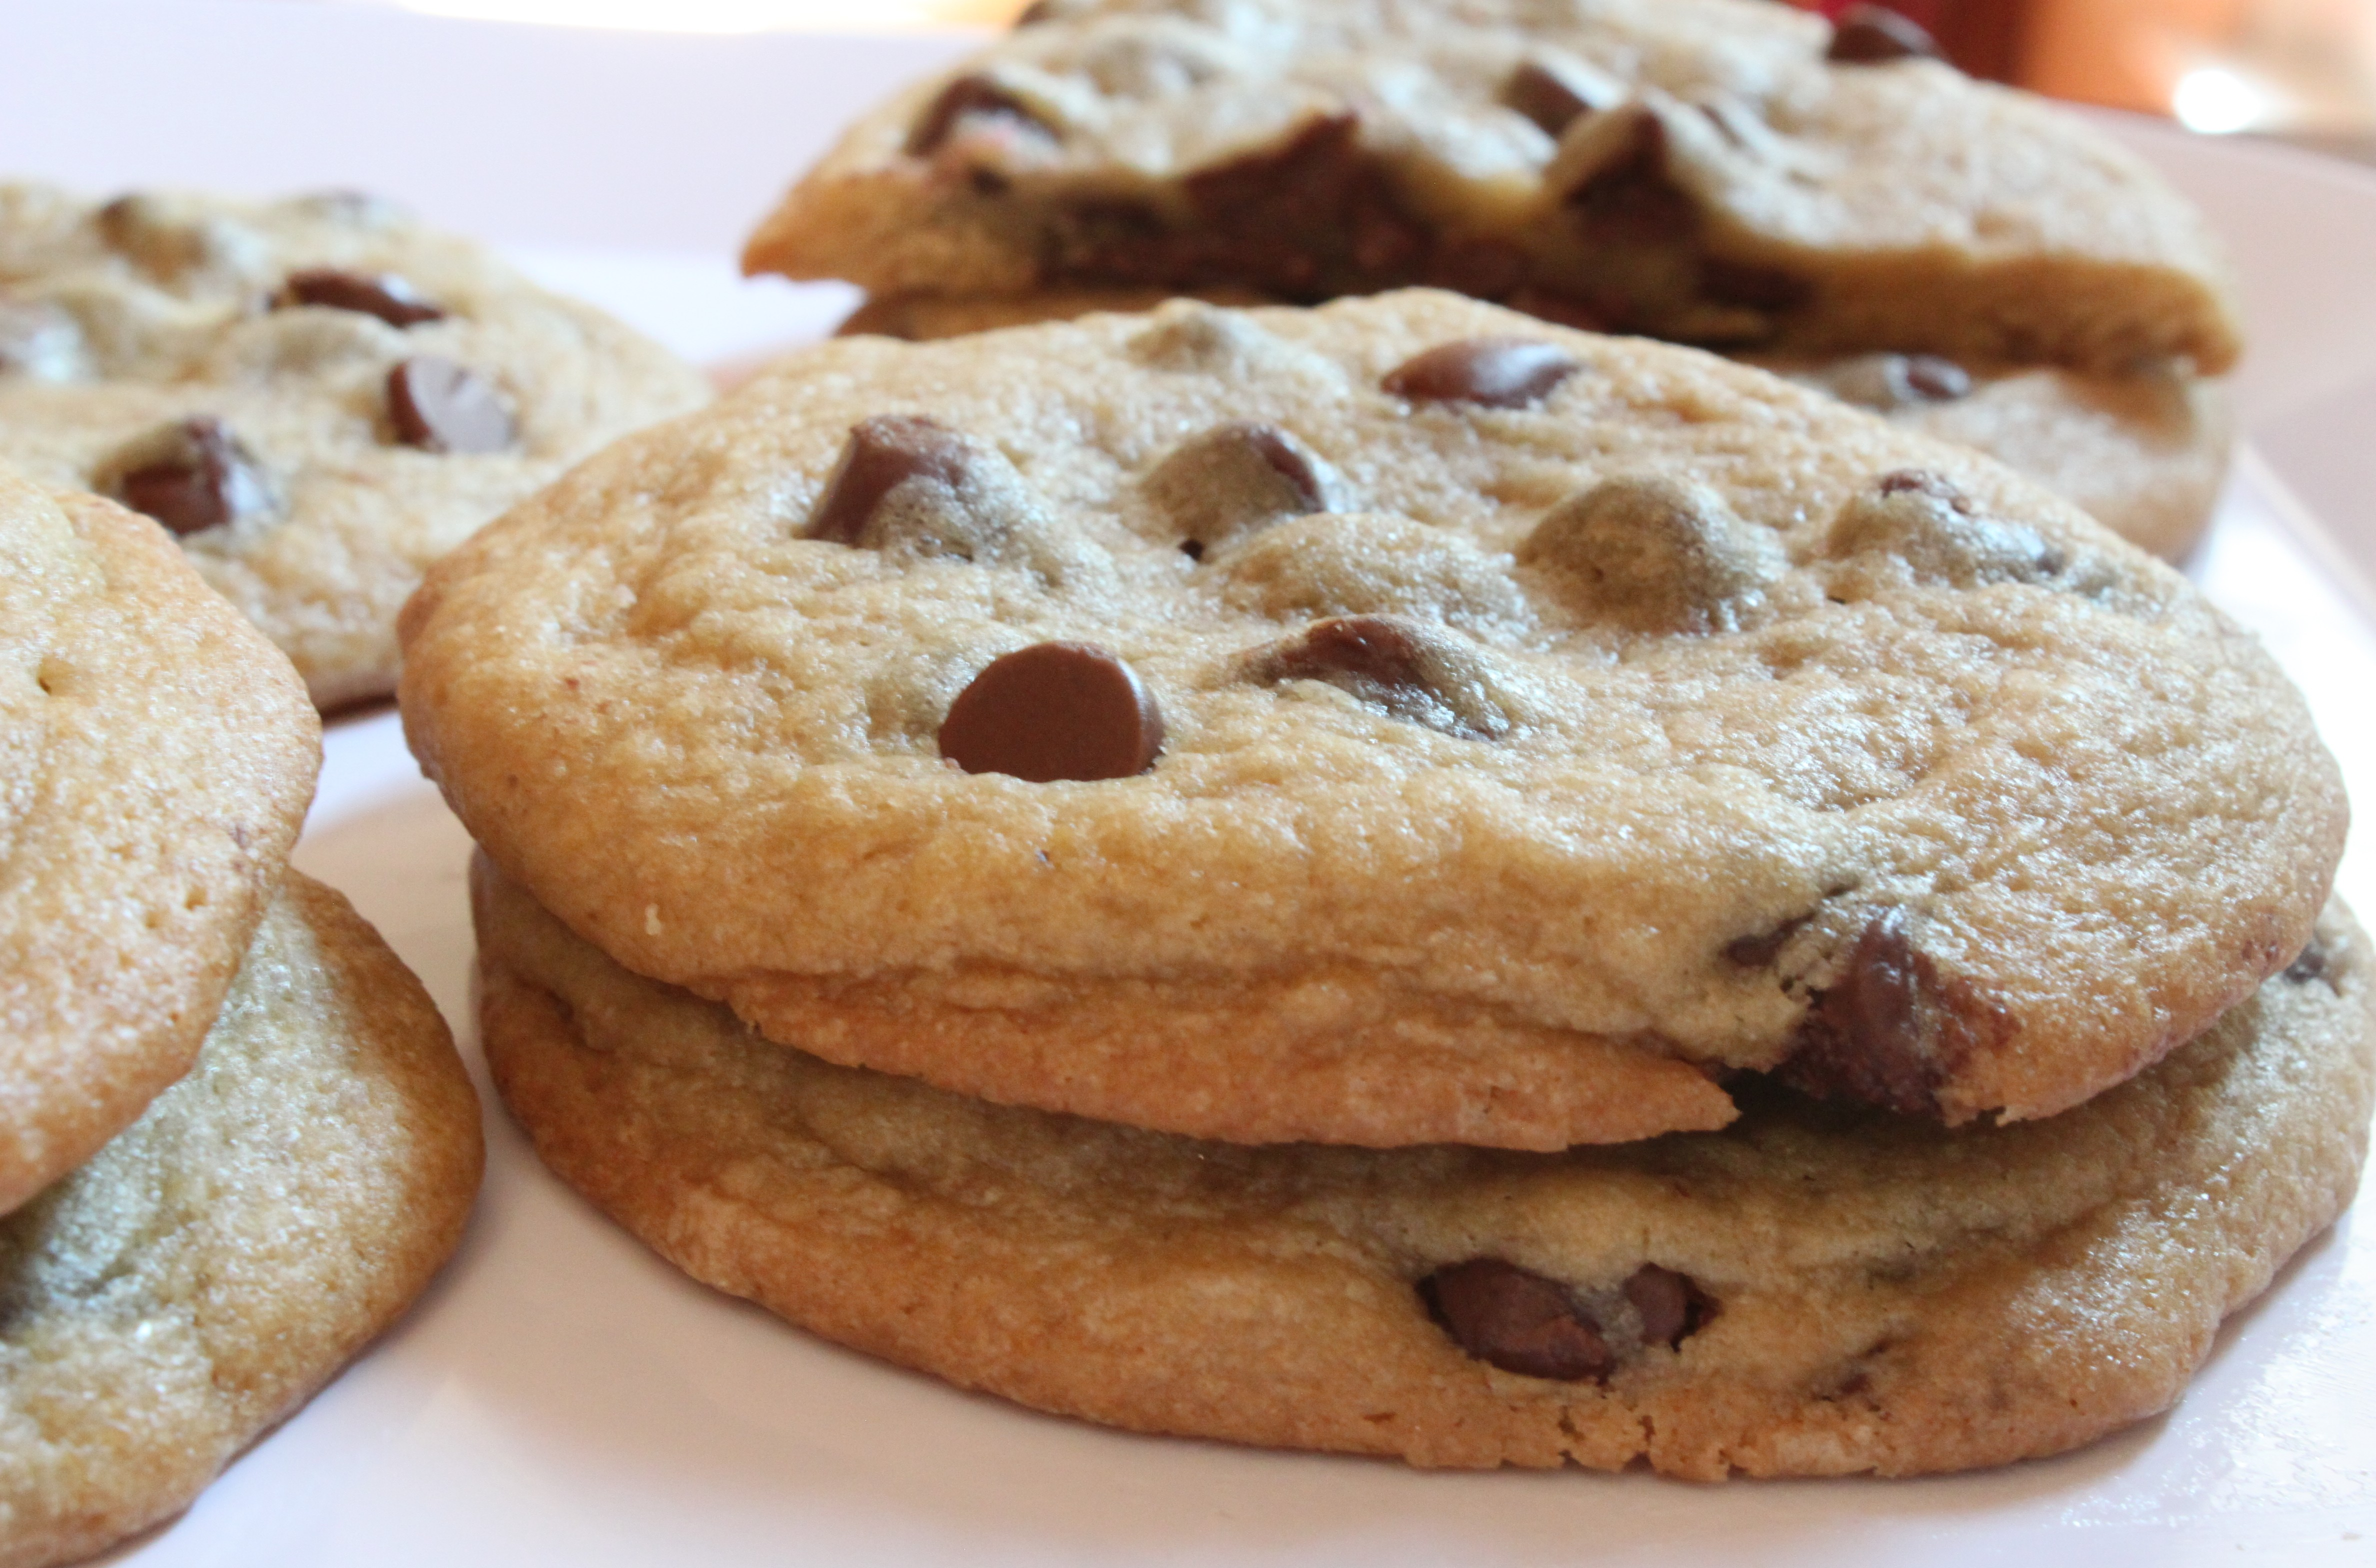 Bakery-Sized Chocolate Chip Cookies